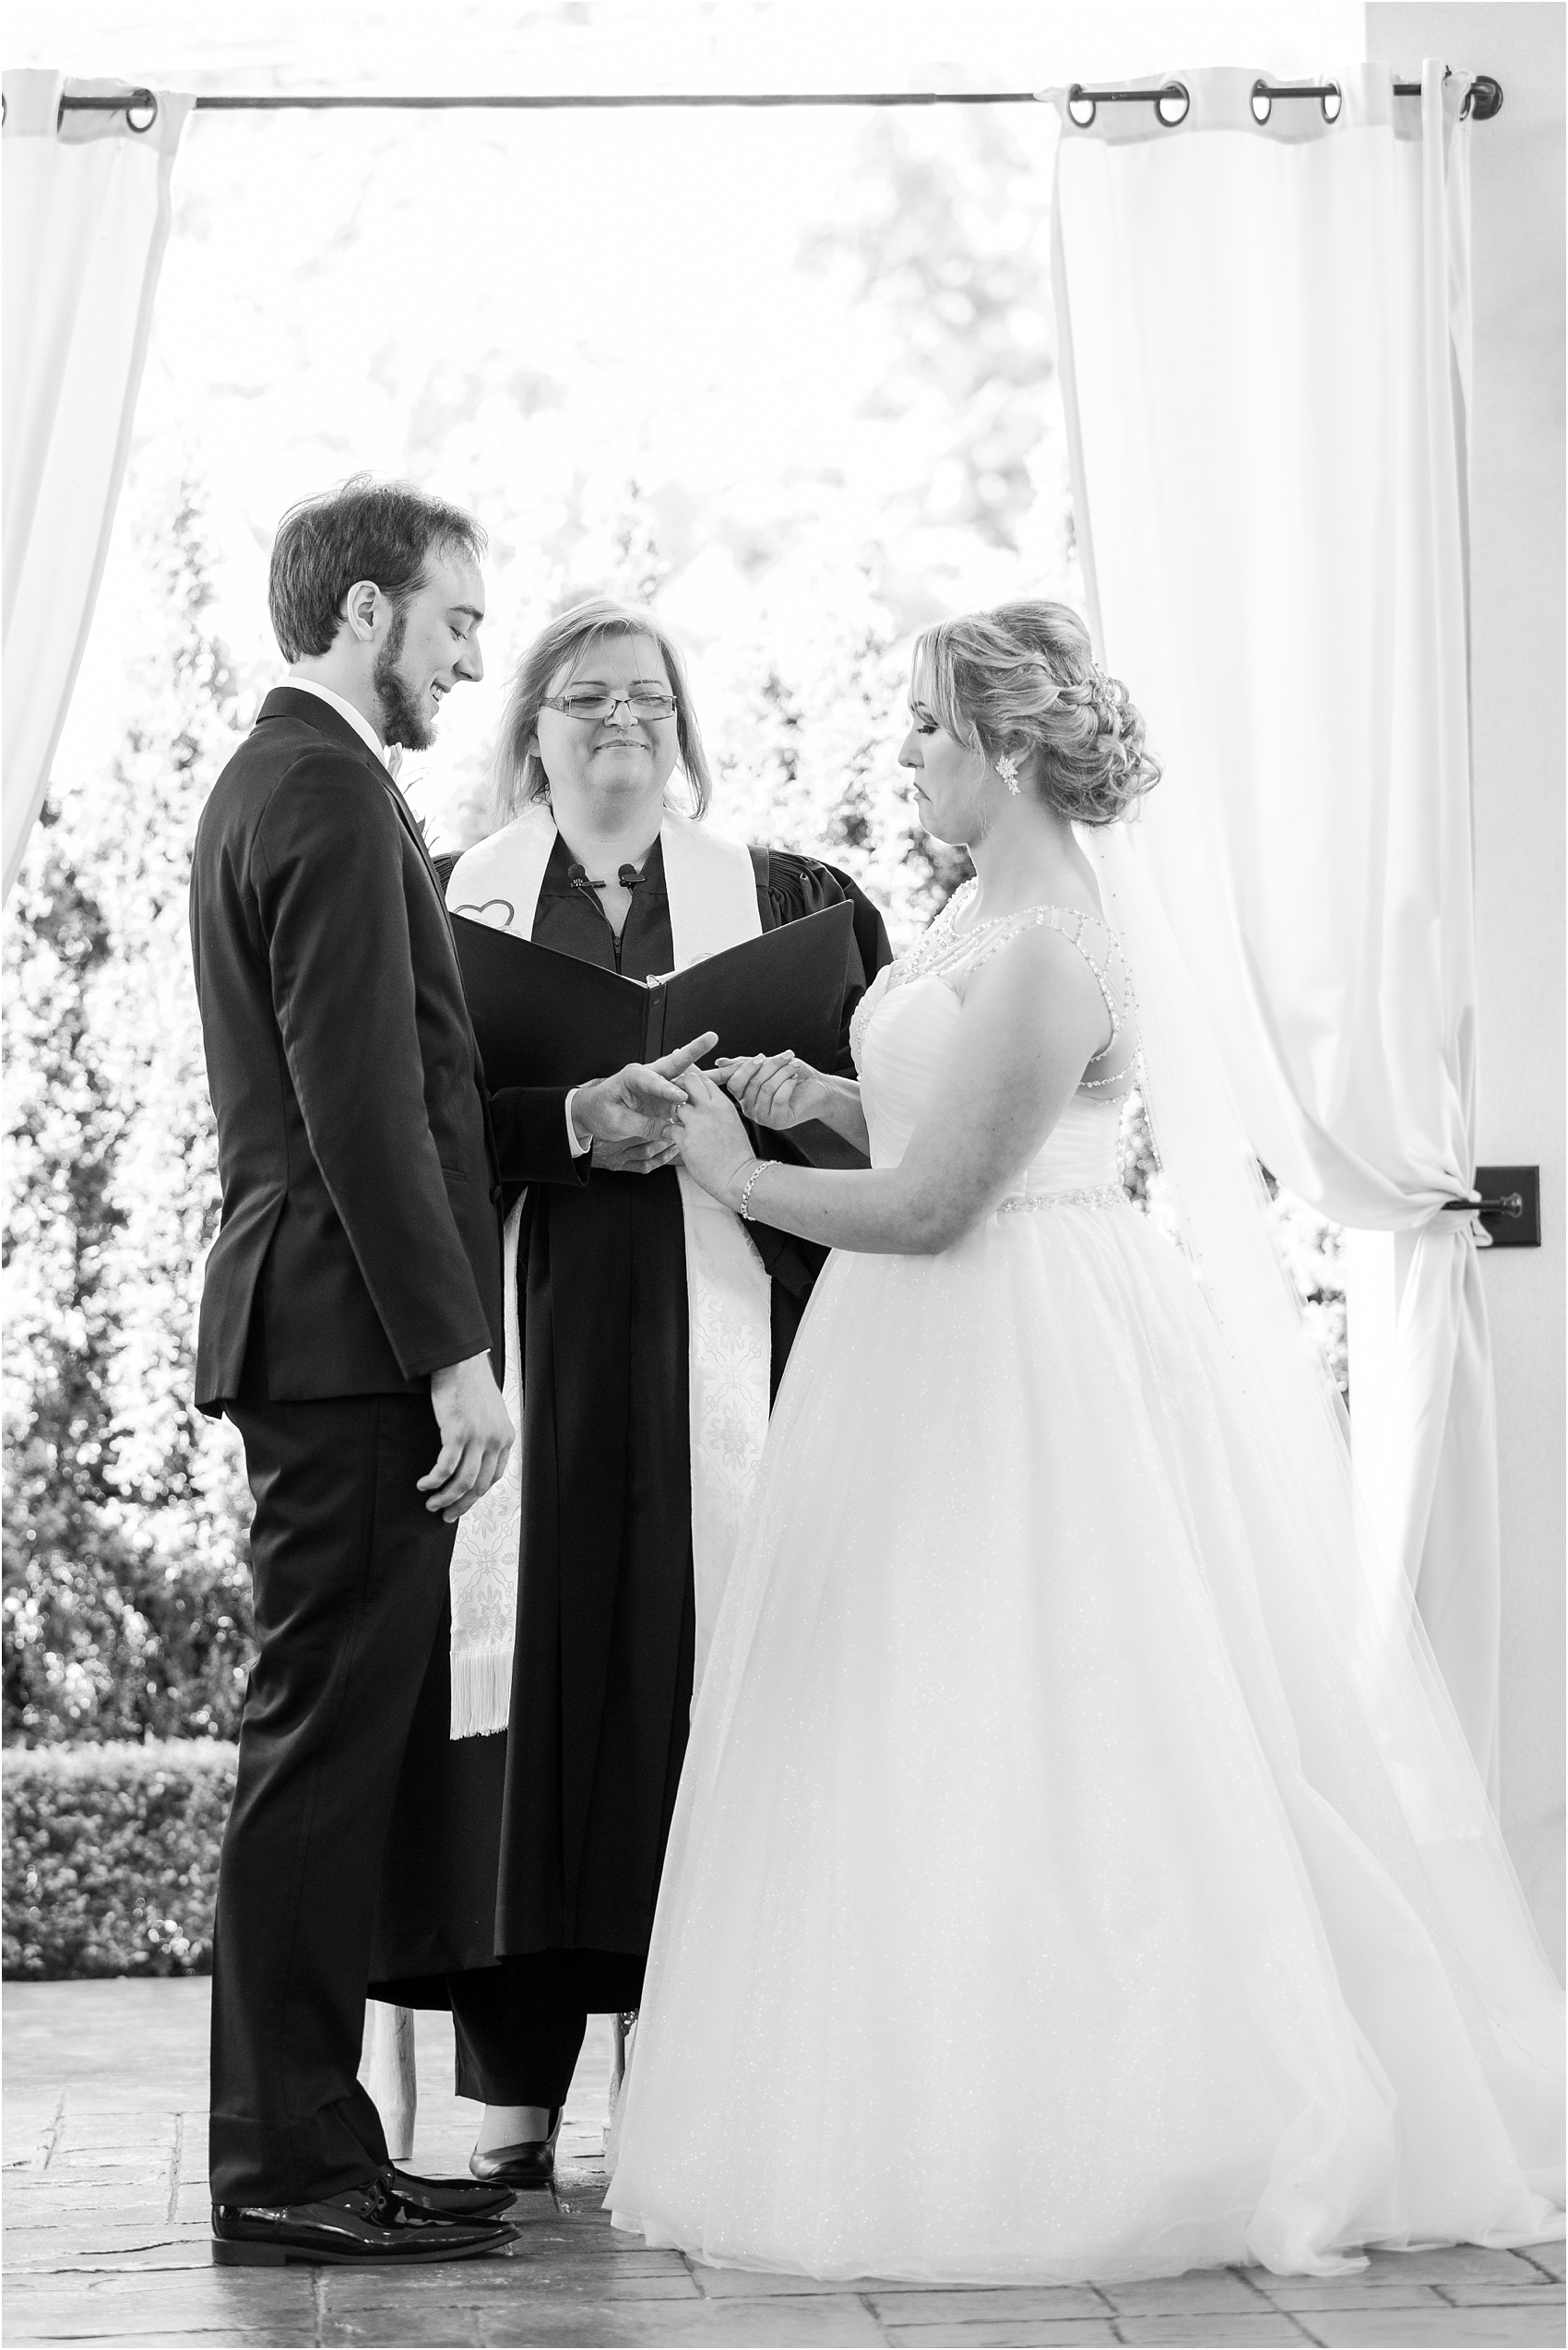 lord-of-the-rings-inspired-wedding-photos-at-crystal-gardens-in-howell-mi-by-courtney-carolyn-photography_0045.jpg